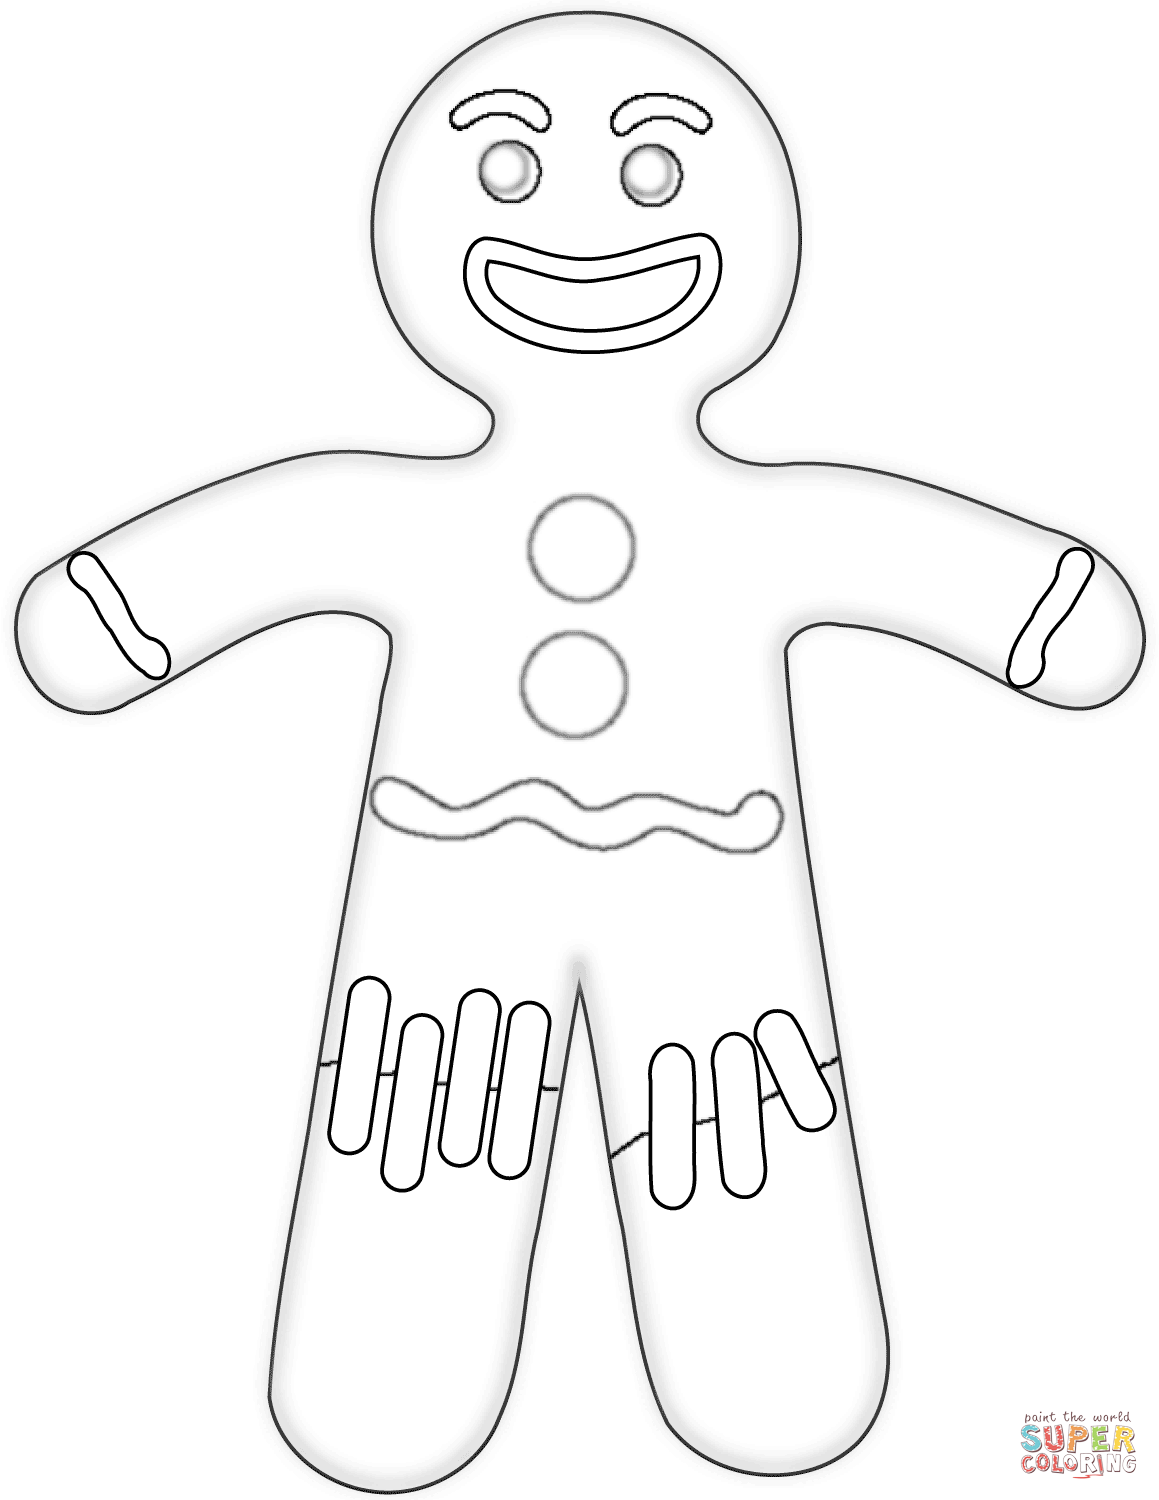 Gingerbread Man Line Drawing at GetDrawings.com | Free for personal ...